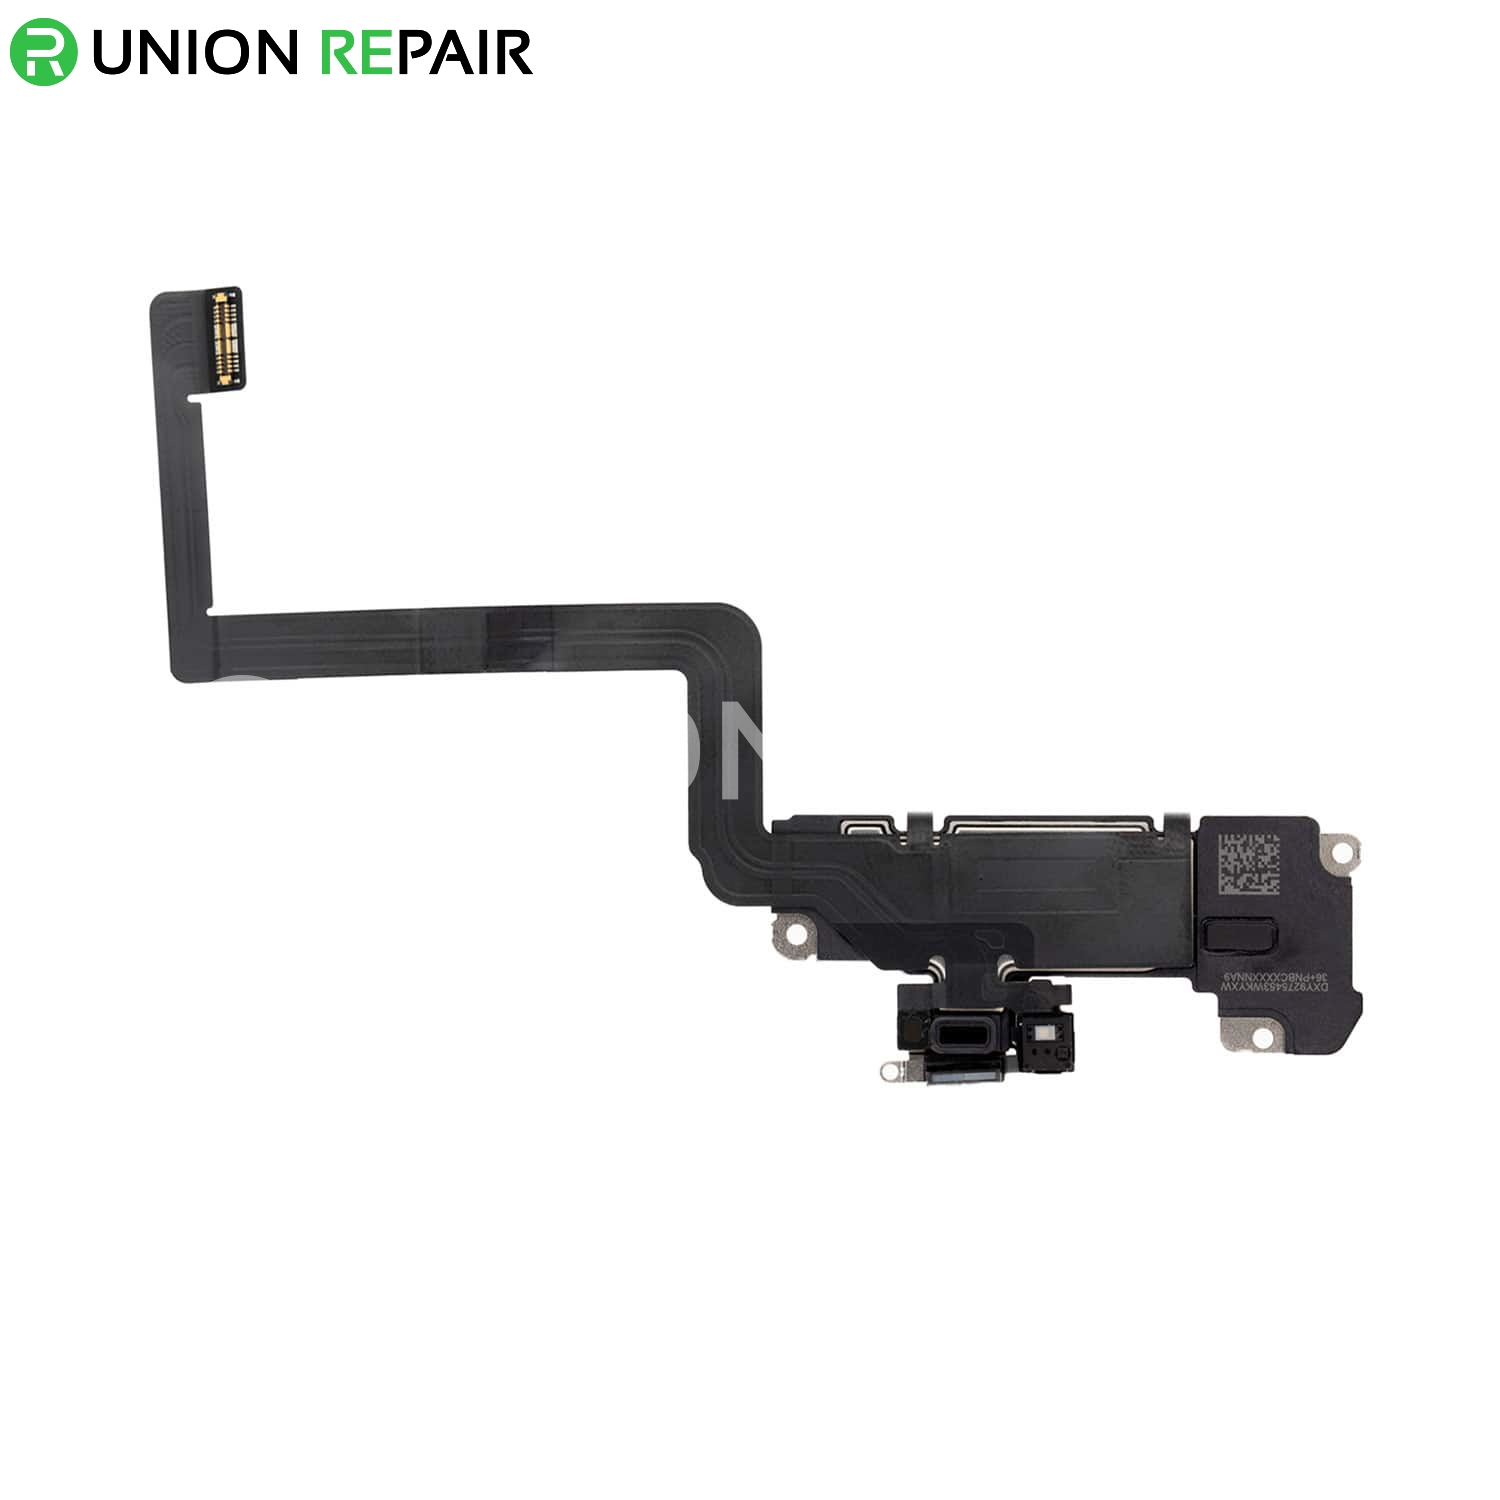 Replacement for iPhone 11 Pro Max Ambient Light Sensor with Ear Speaker Assembly